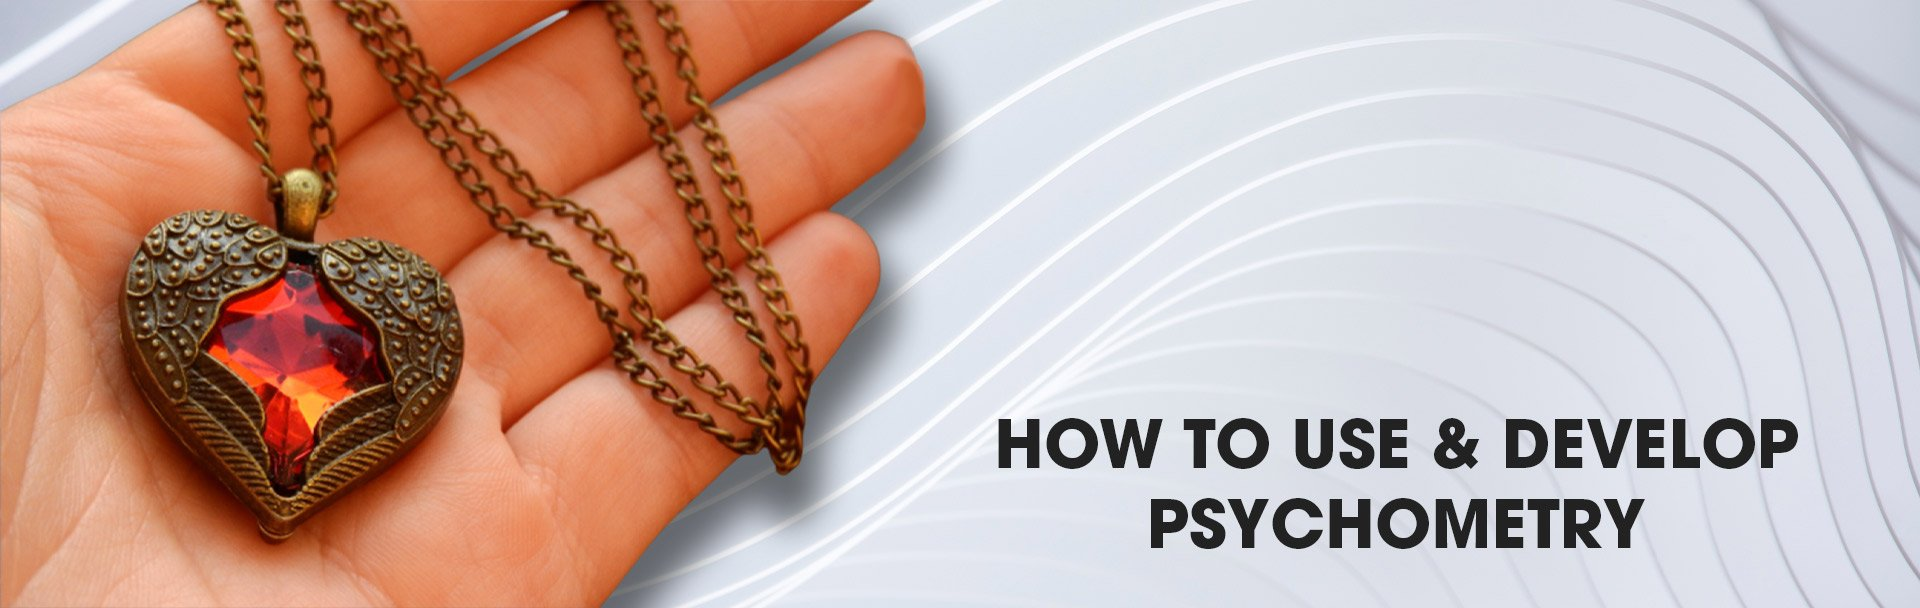 Psychometry short course with Ann Theato